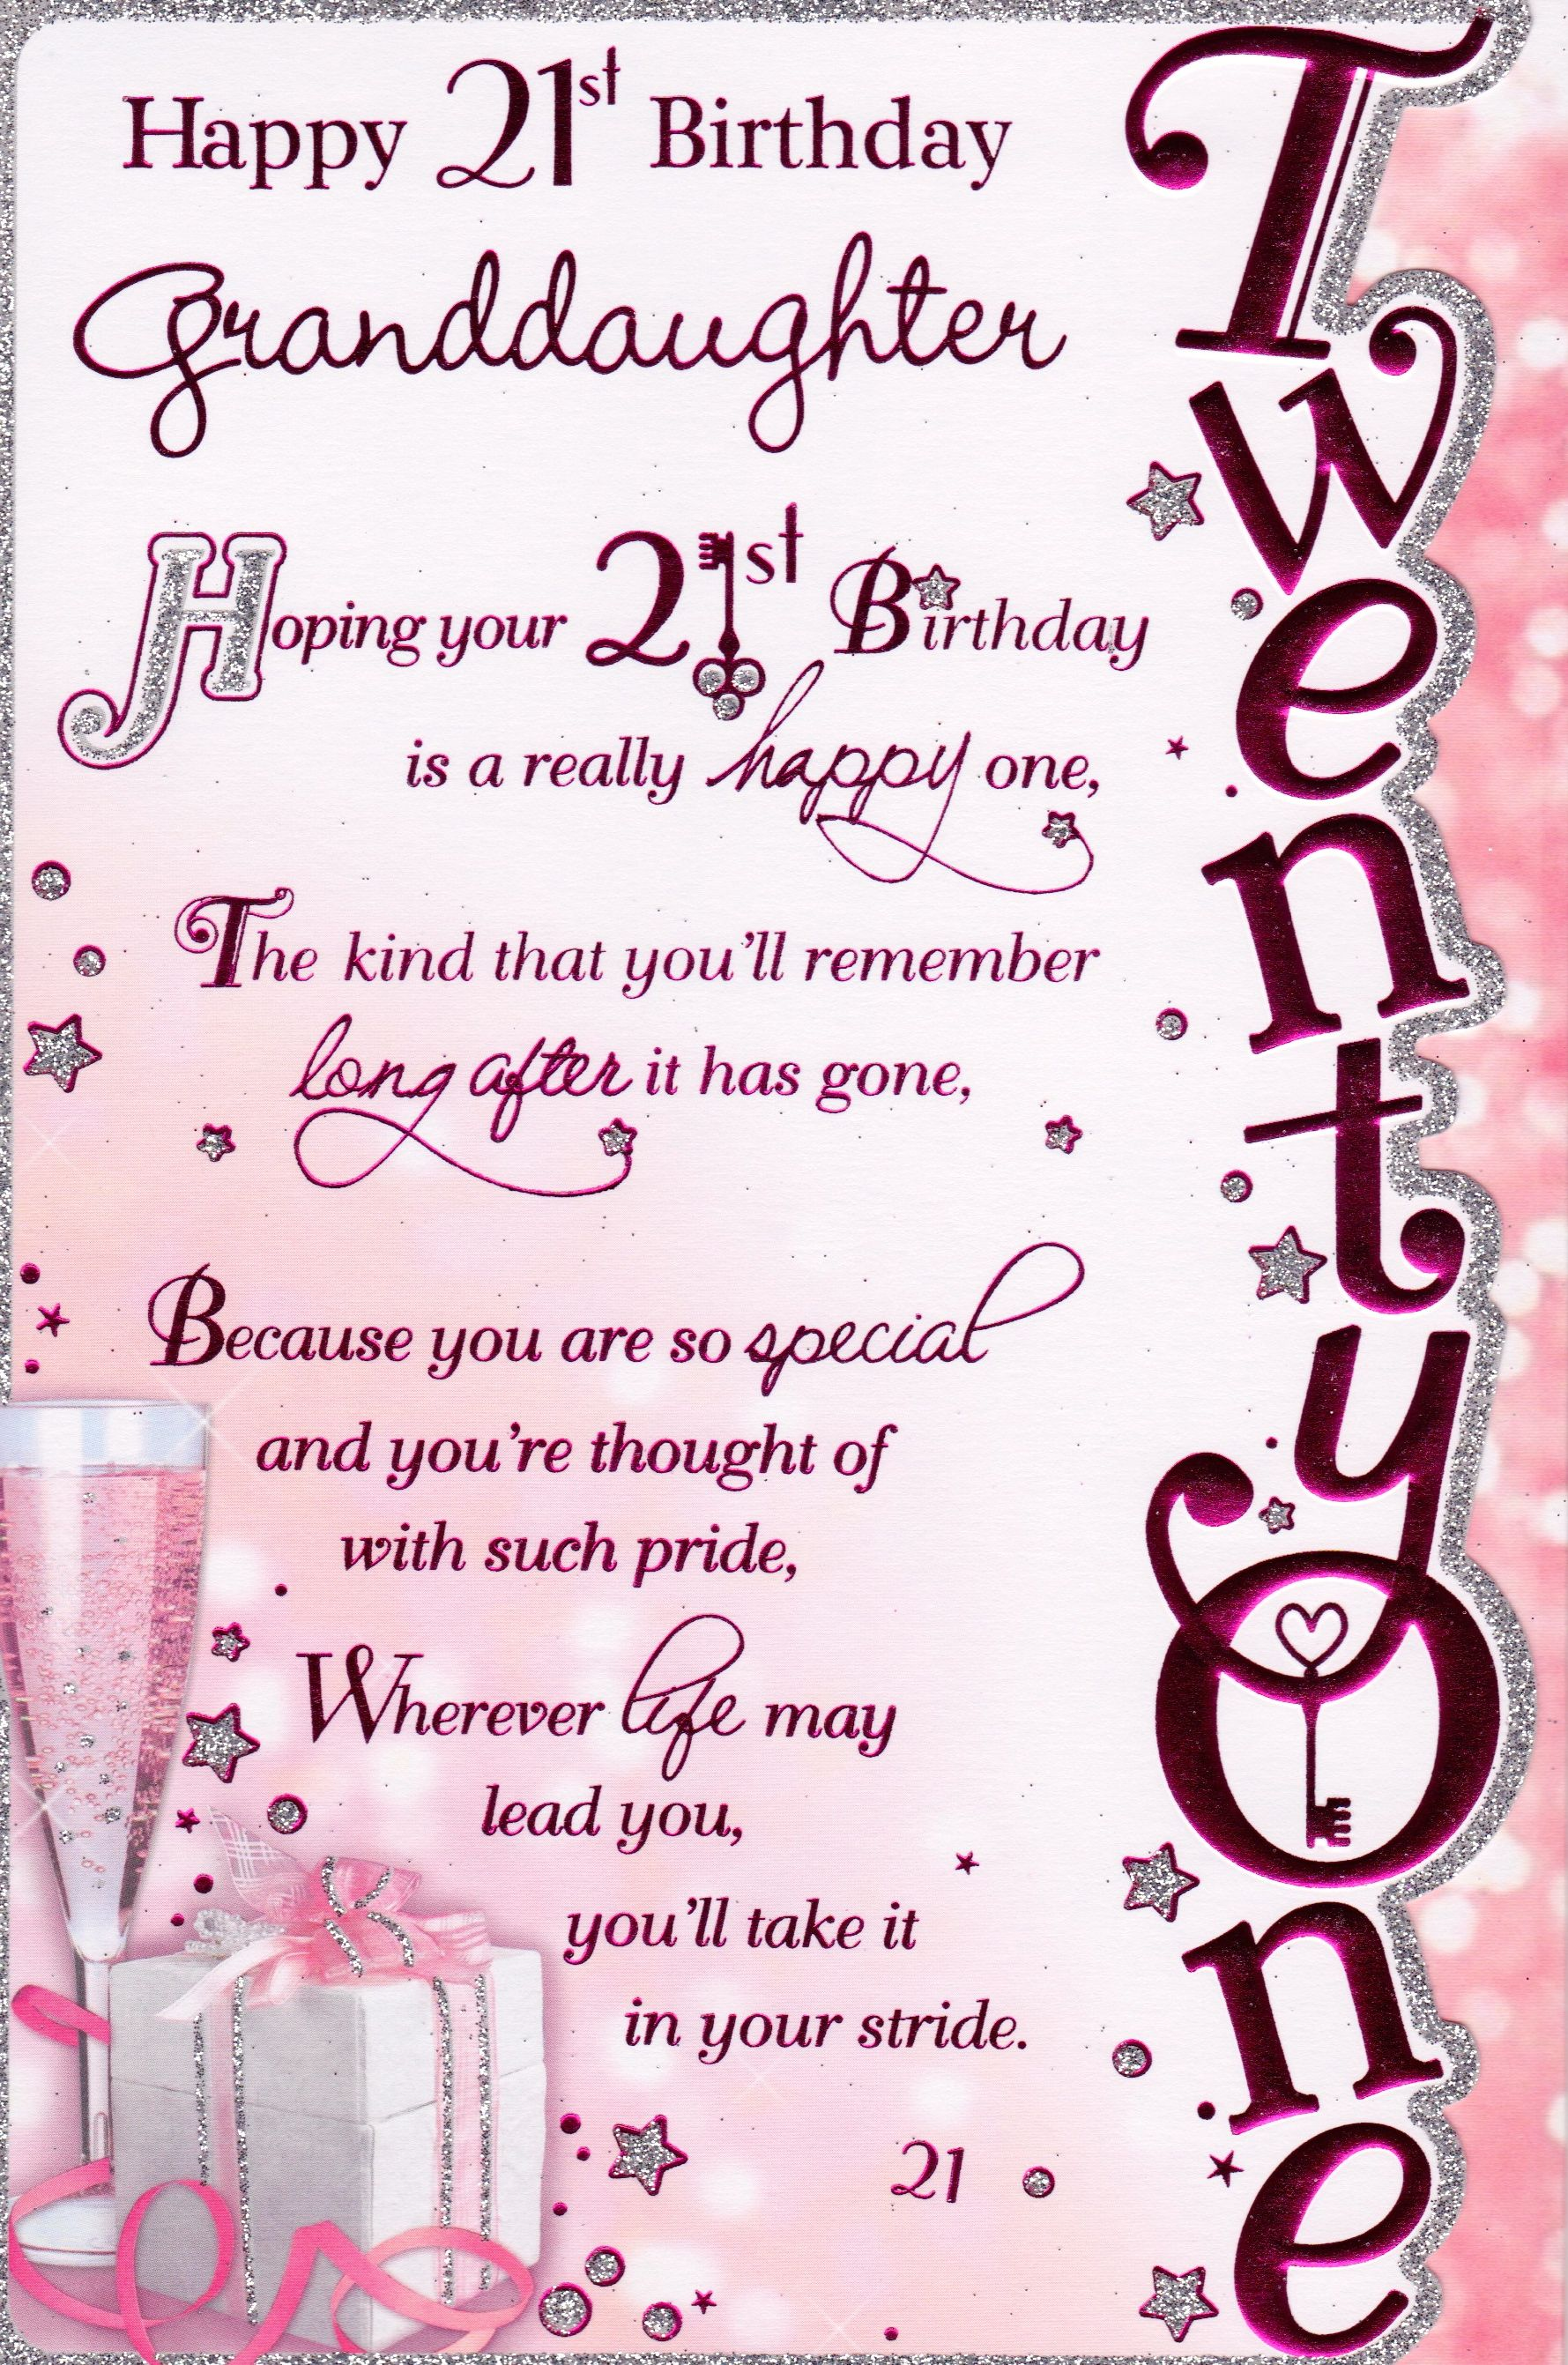 Happy 21st Birthday Daughter Quotes Cards For Niece